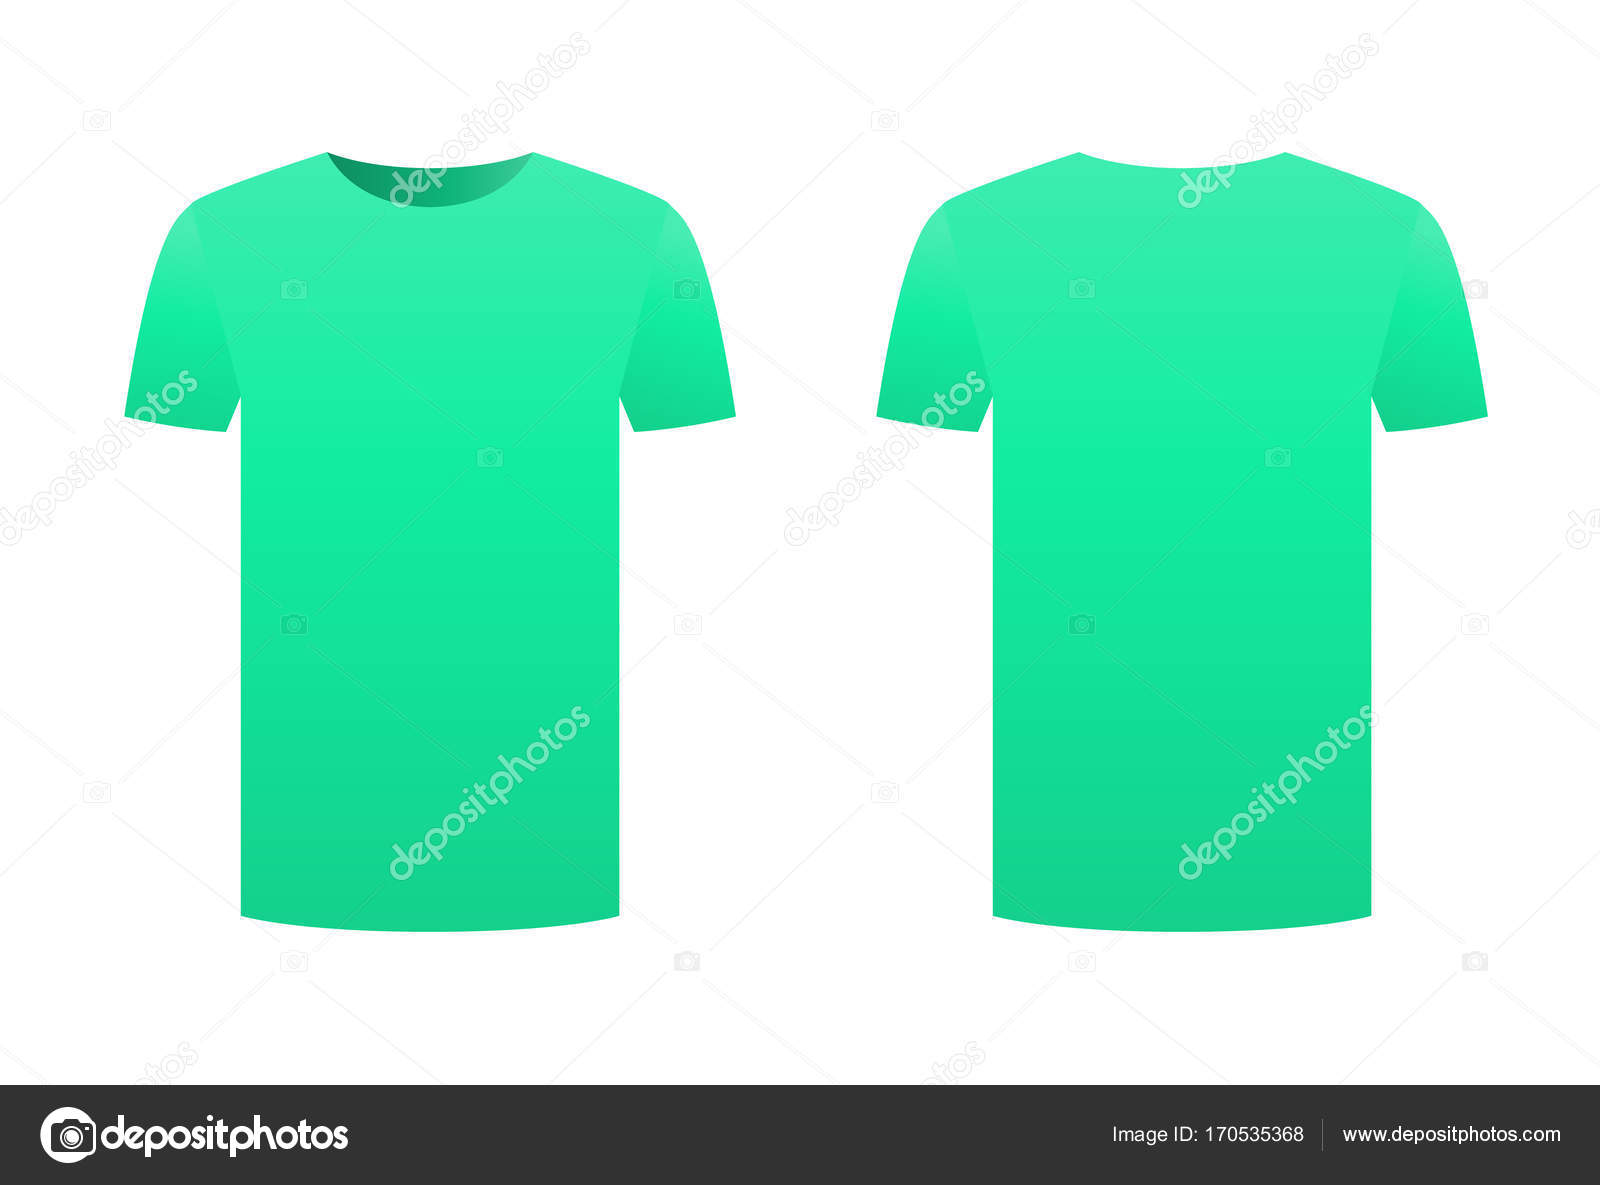 Teal t-shirt template shirt isolated on white background front and ...